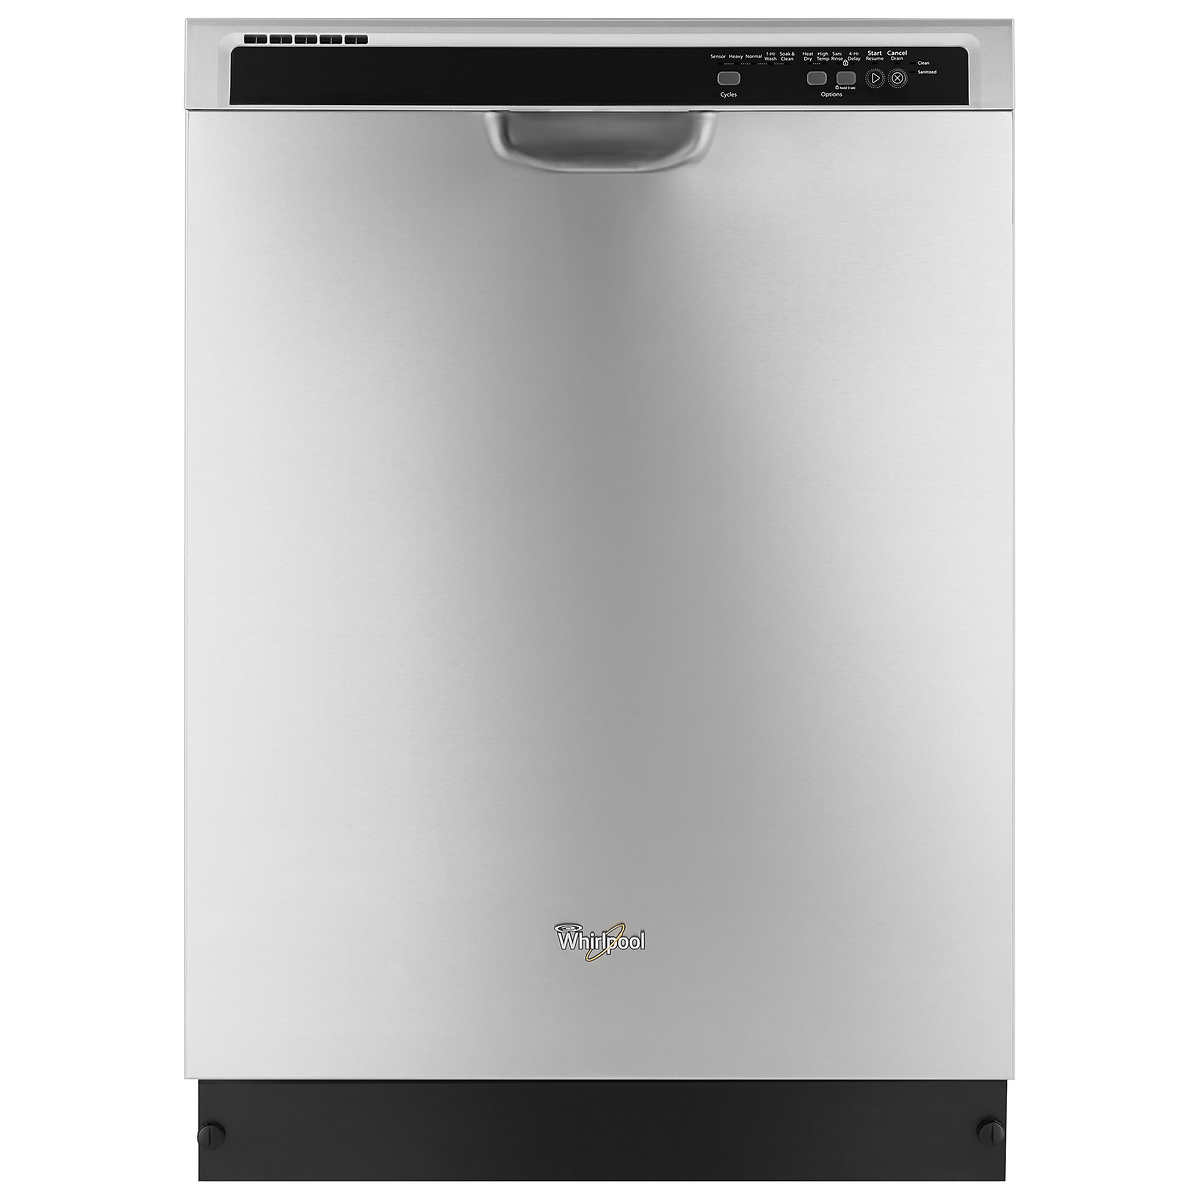 Whirlpool 24 in  Dishwasher with Sensor Cycle